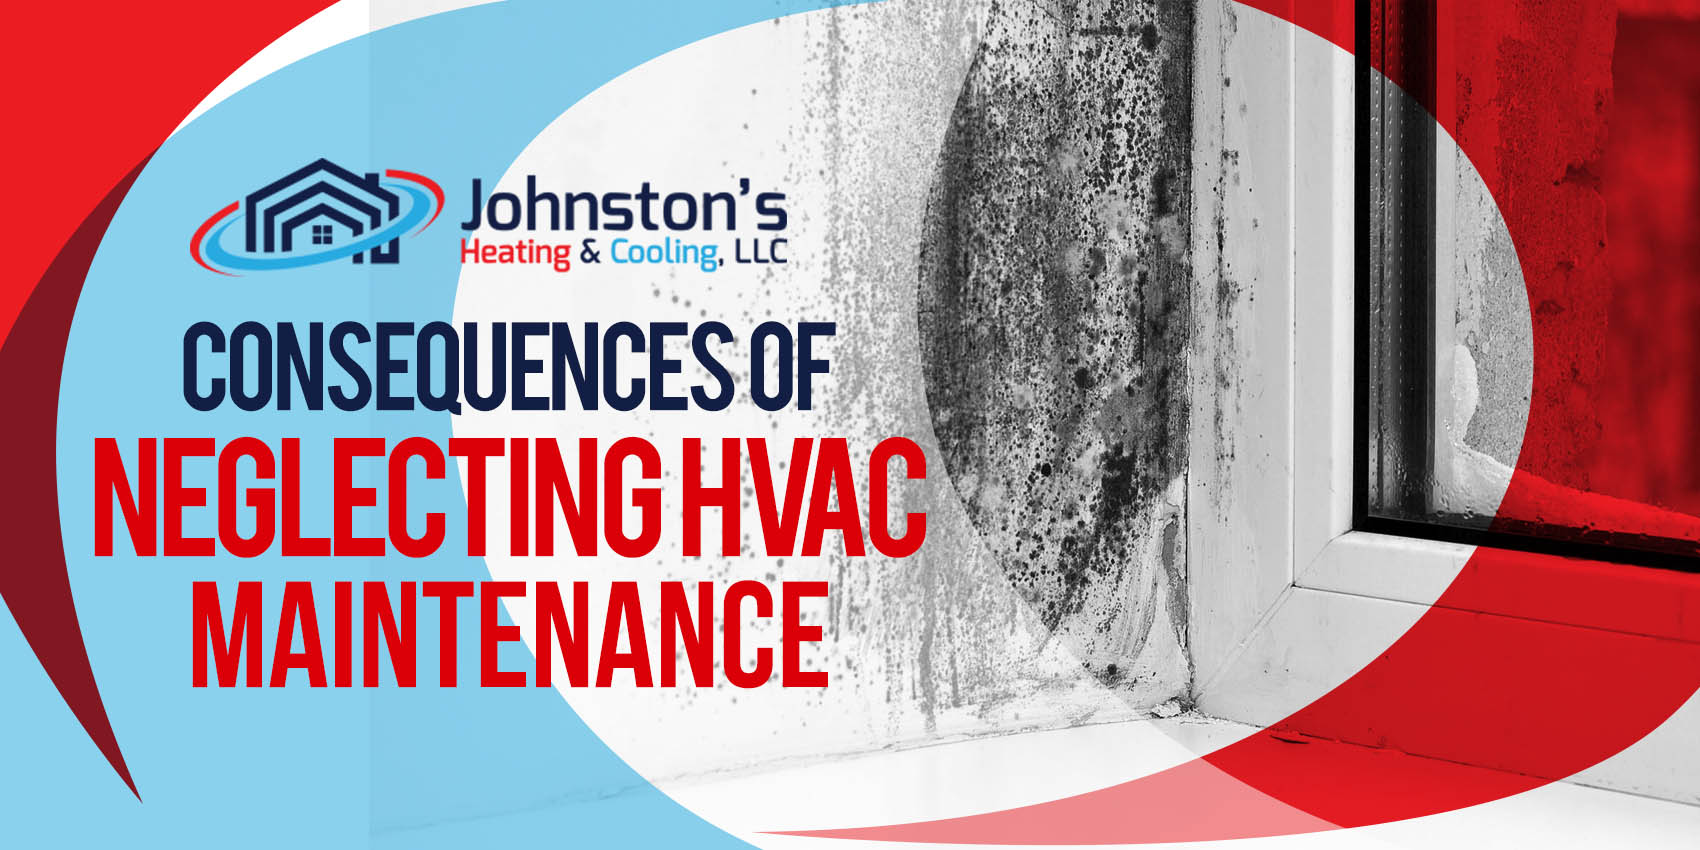 Consequences of Neglecting HVAC Maintenance